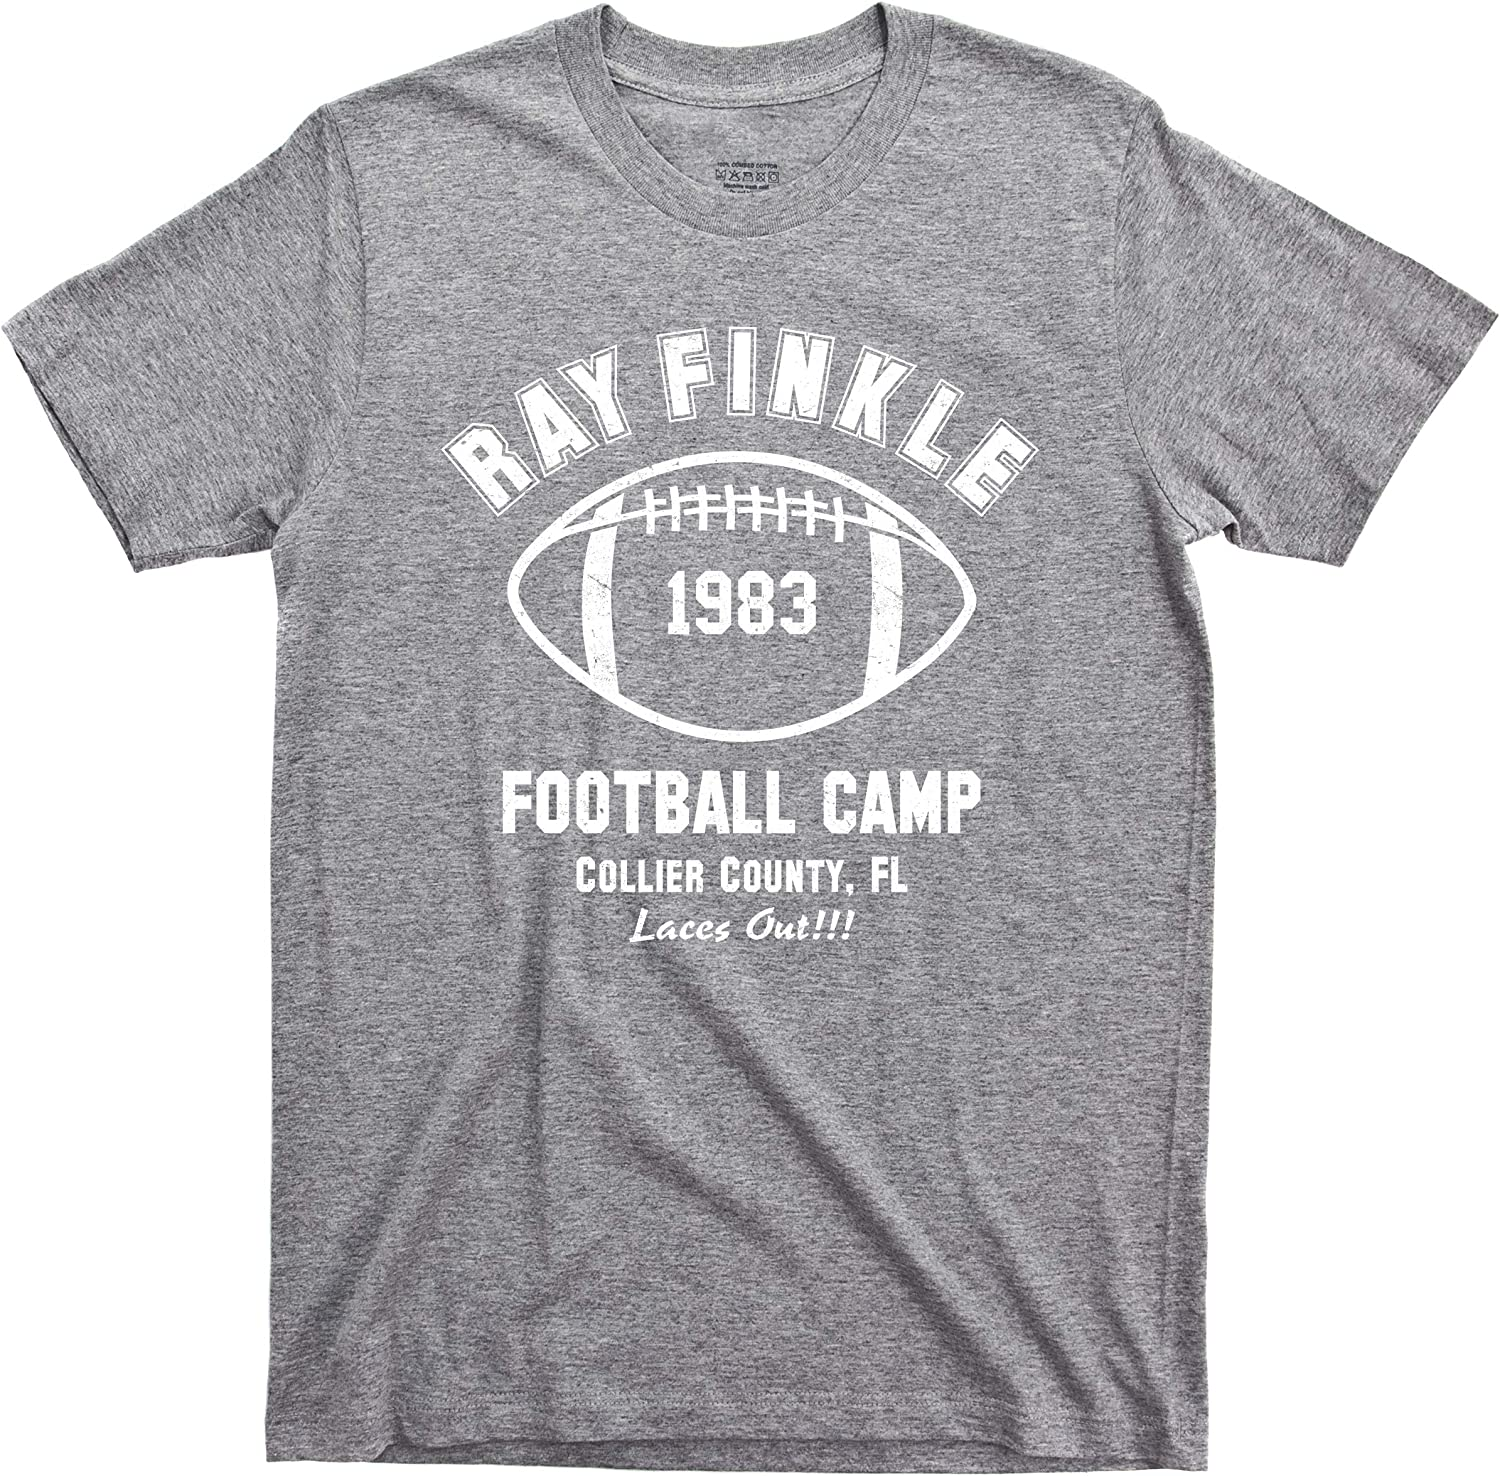 Ace Ventura T Shirt Pet Detective Ray Finkle Football Camp Laces Out Jim Carrey Movie Tee